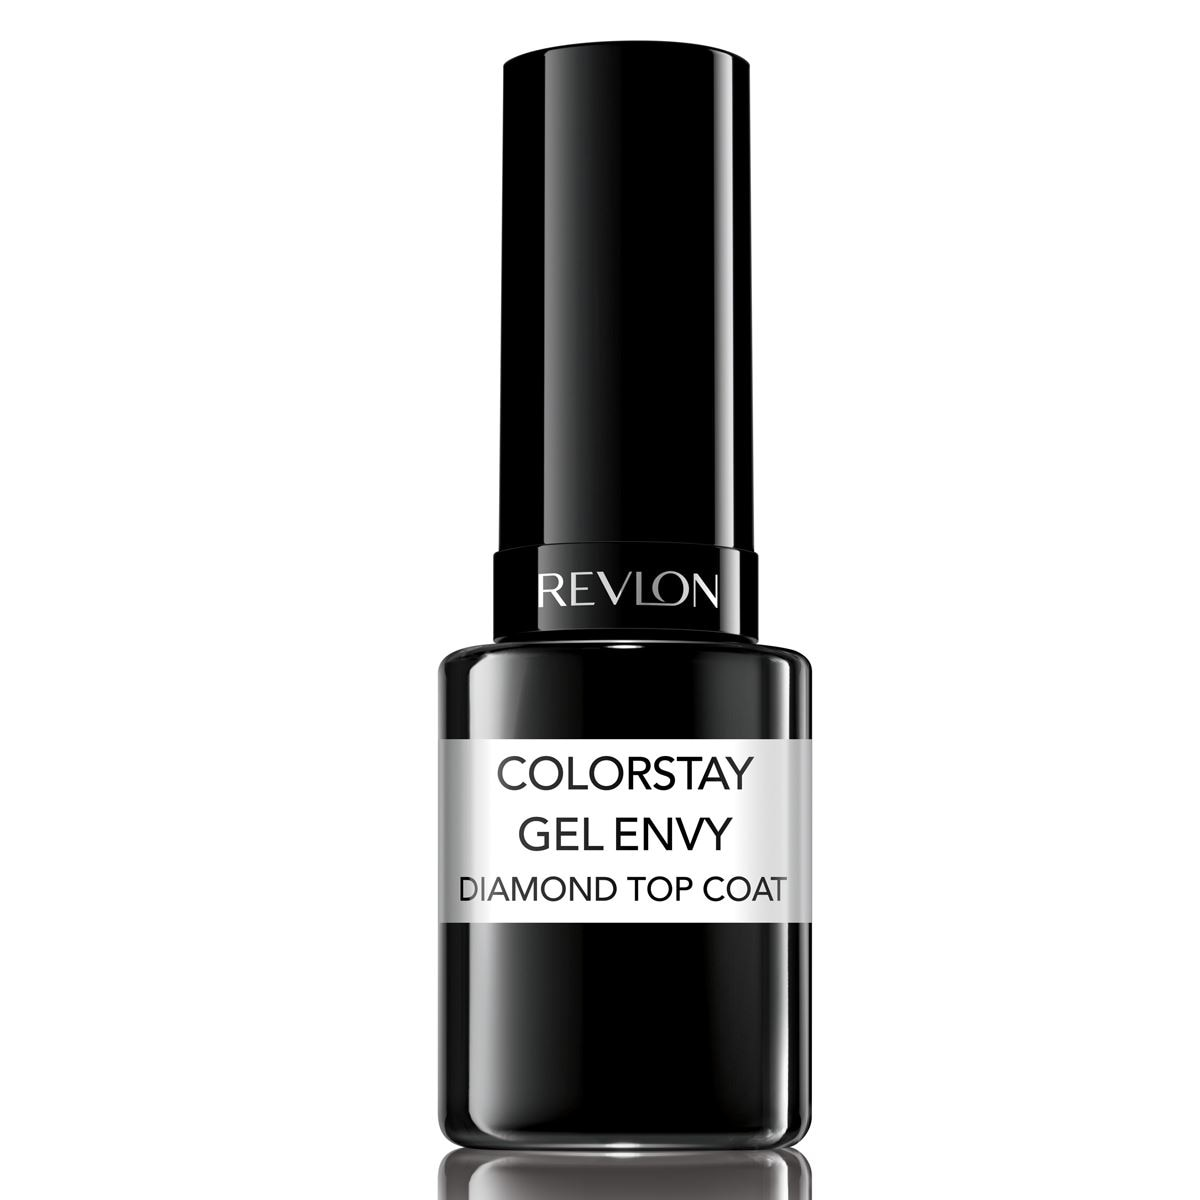 ColorStay Gel Envy